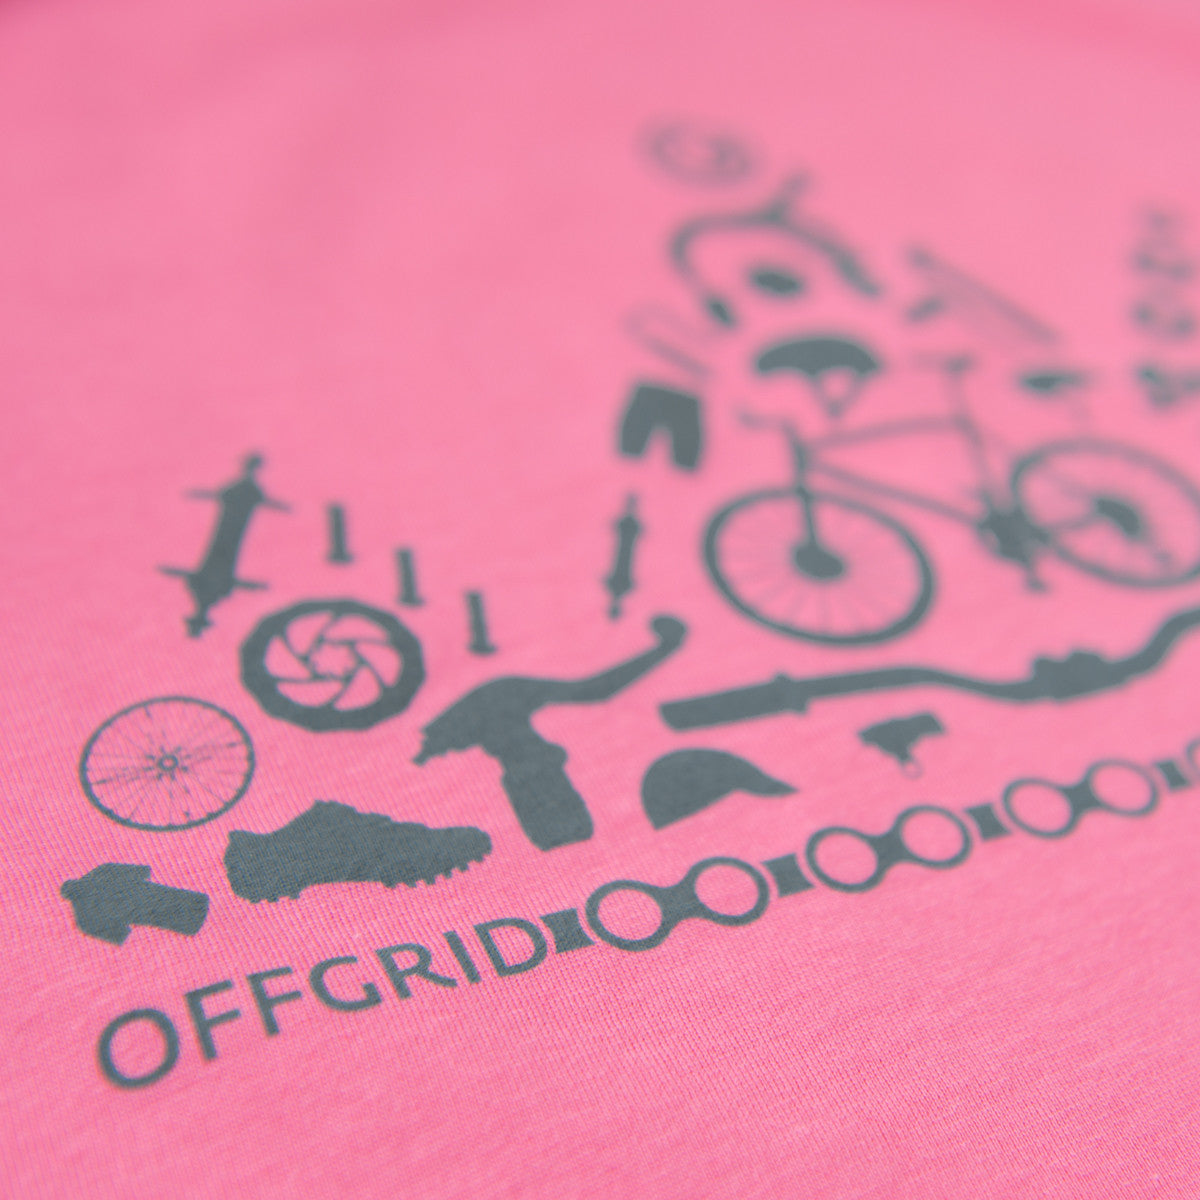 Cranks, Cogs, Bits & Bobs by OFFGRID Clothing